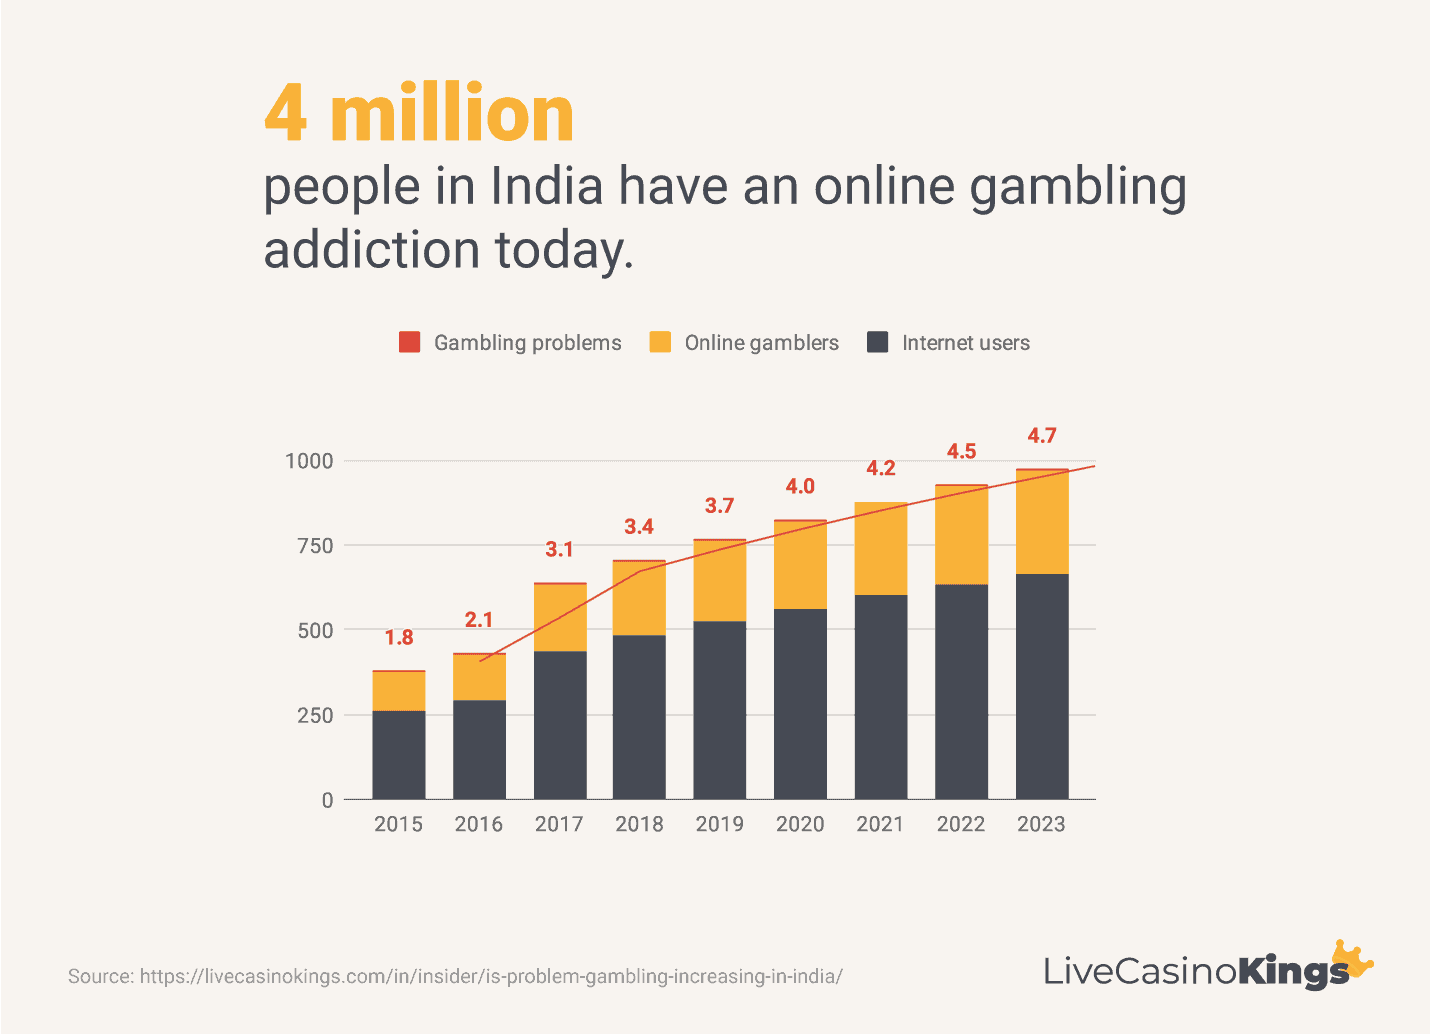 Statistics over online gambling addictions in India